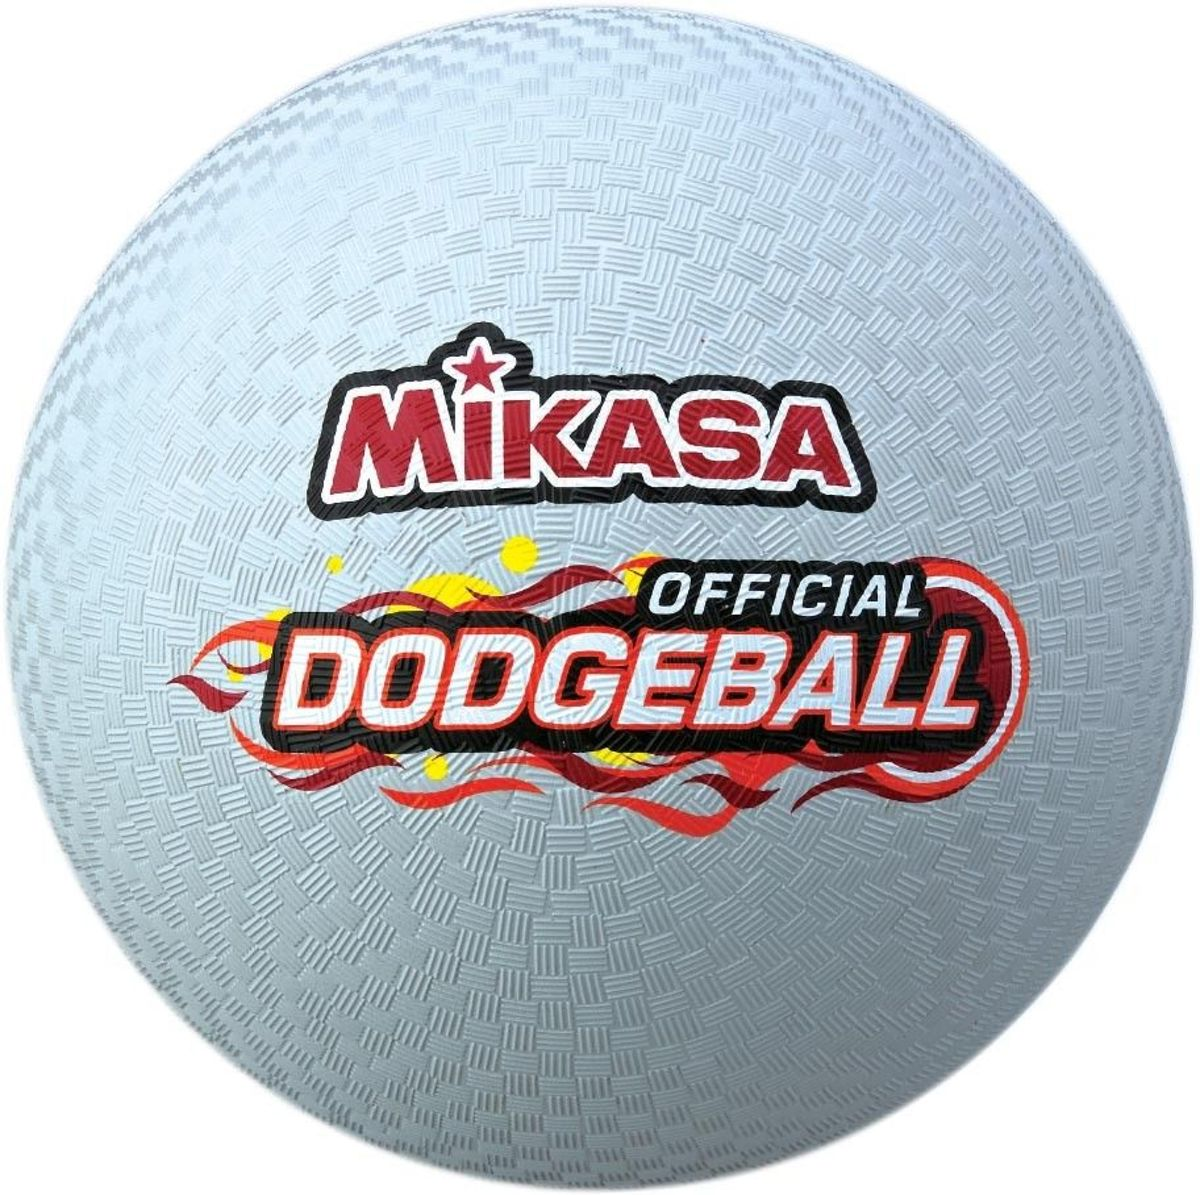 Dodgeball Official | Trefbal